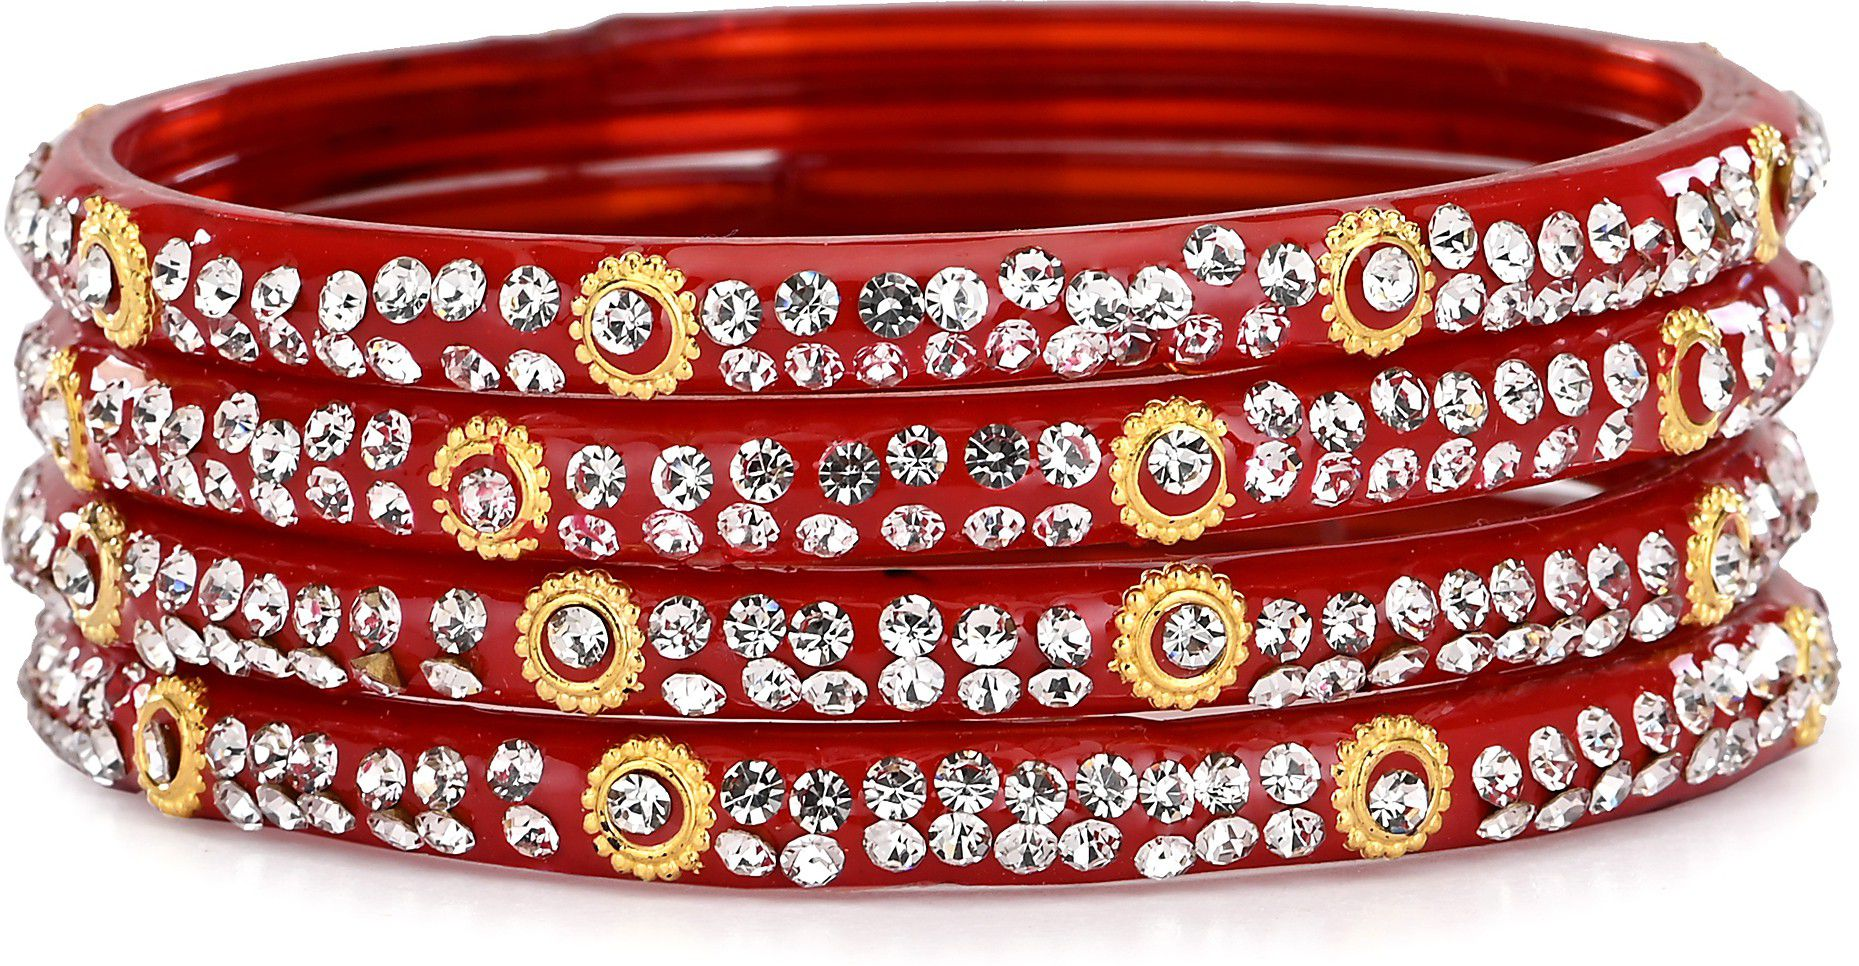 Somil Designer Bridal Glass Bangle Set For Party Marriage, And Function, Ornamented, Colorful -S11_2.6